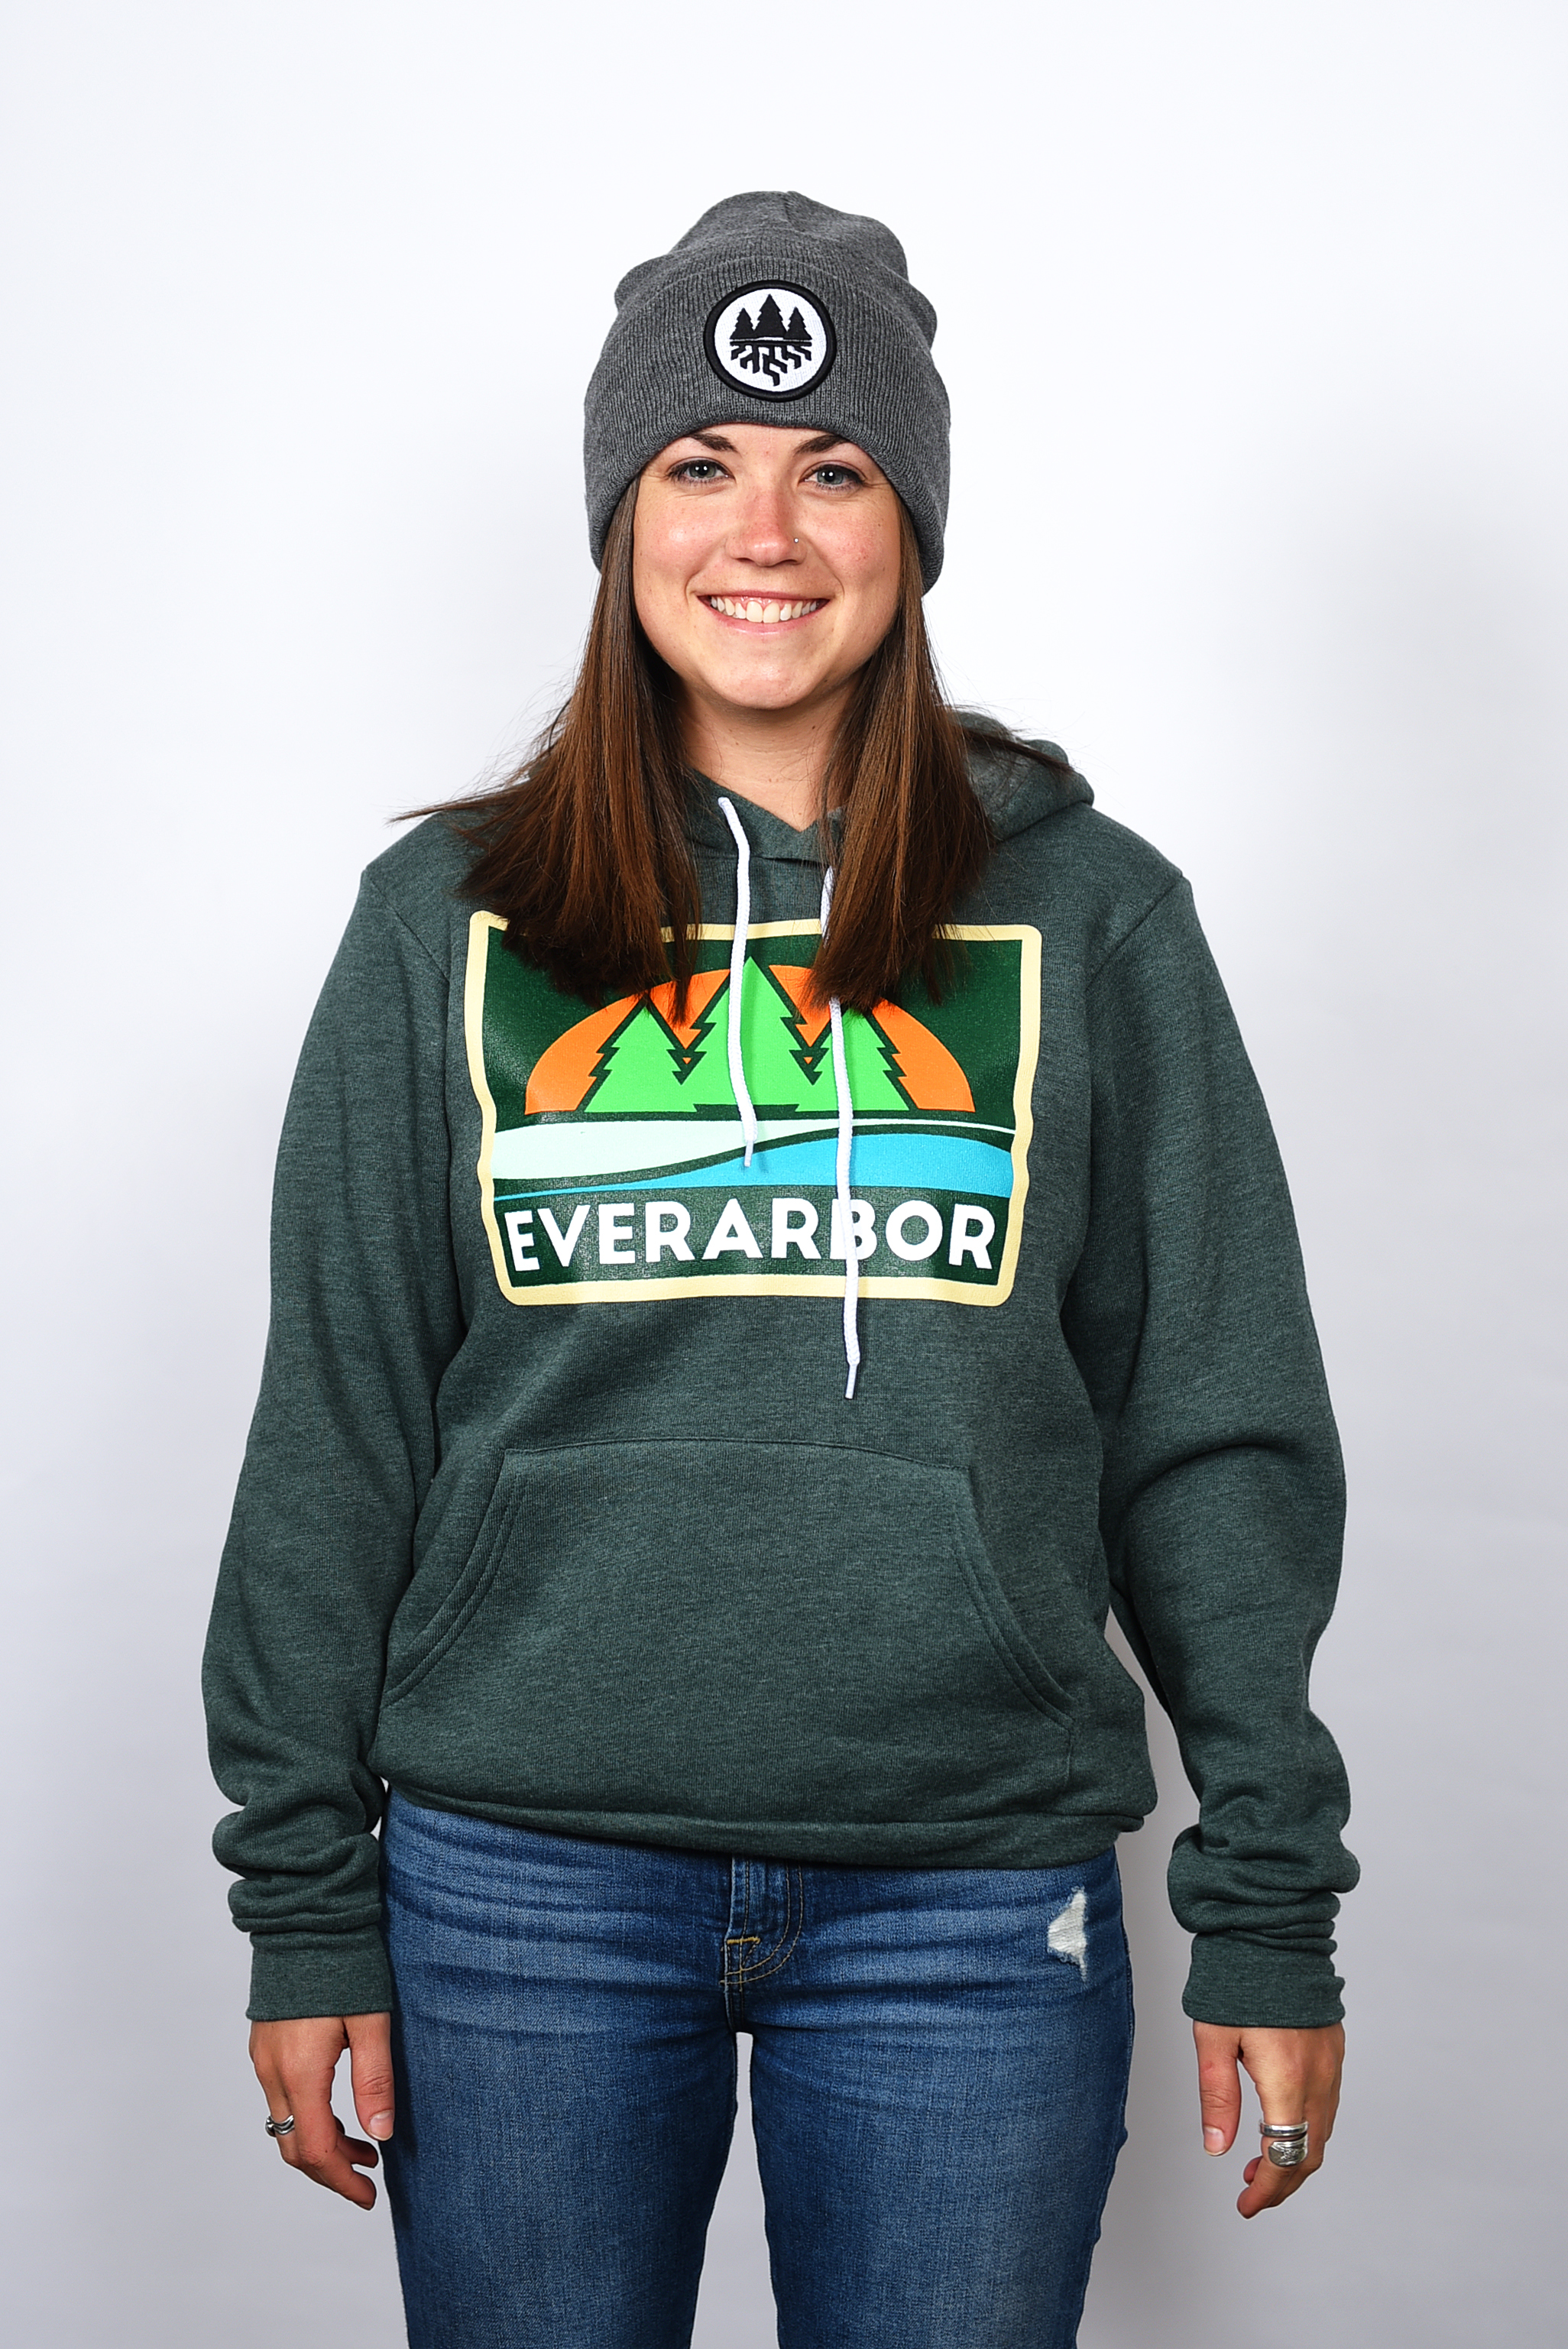 EVERARBOR_BRANDING_2019_KB0211.jpg